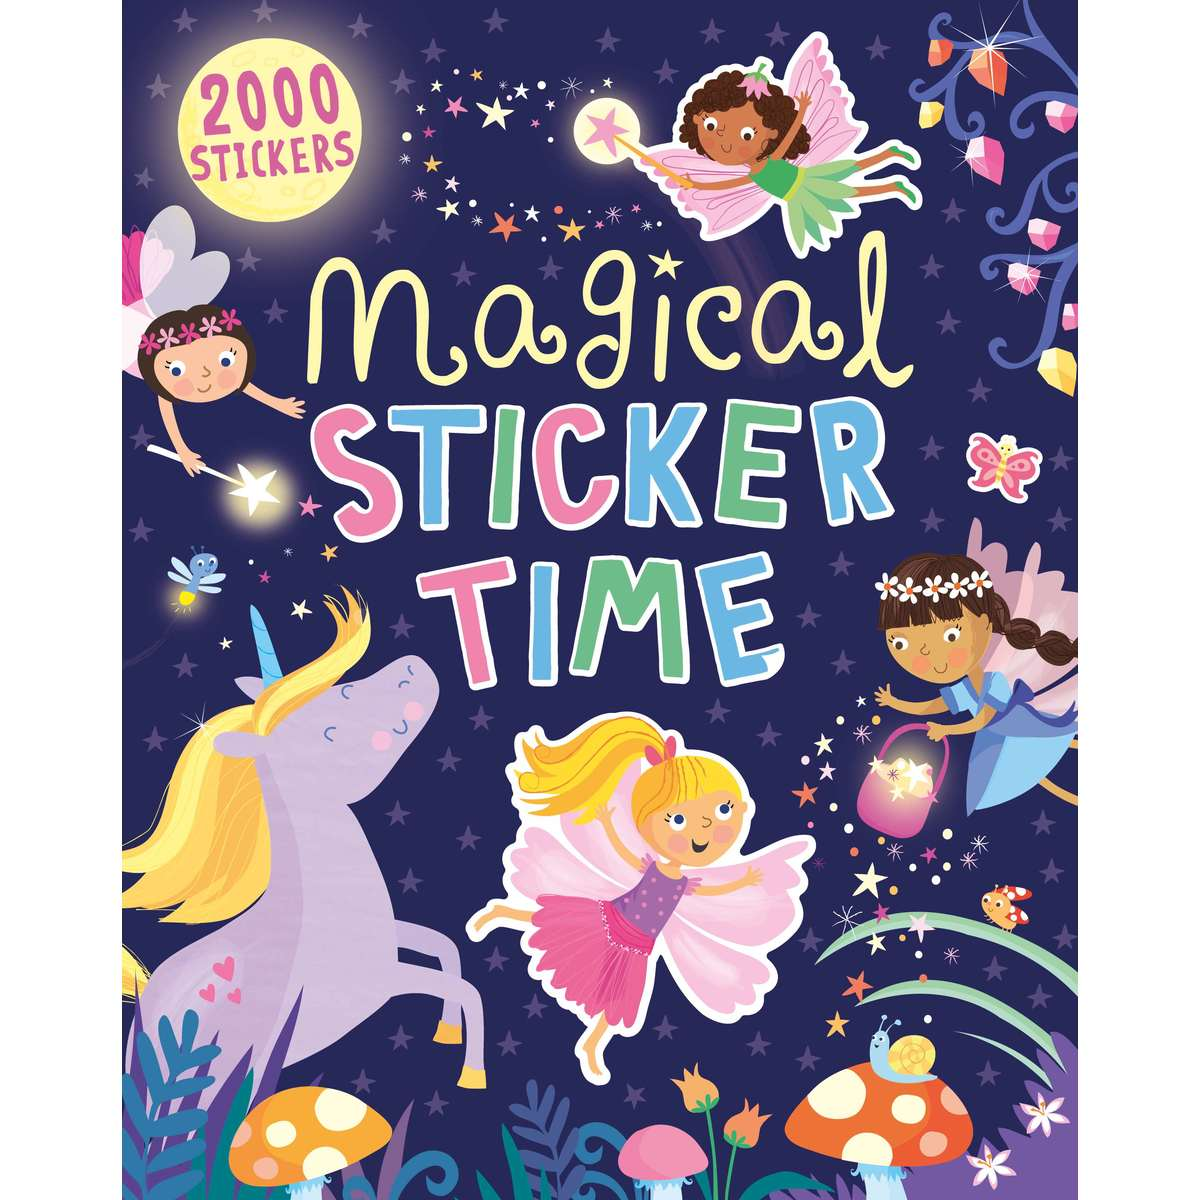 Big W Stickers Magical Sticker Time